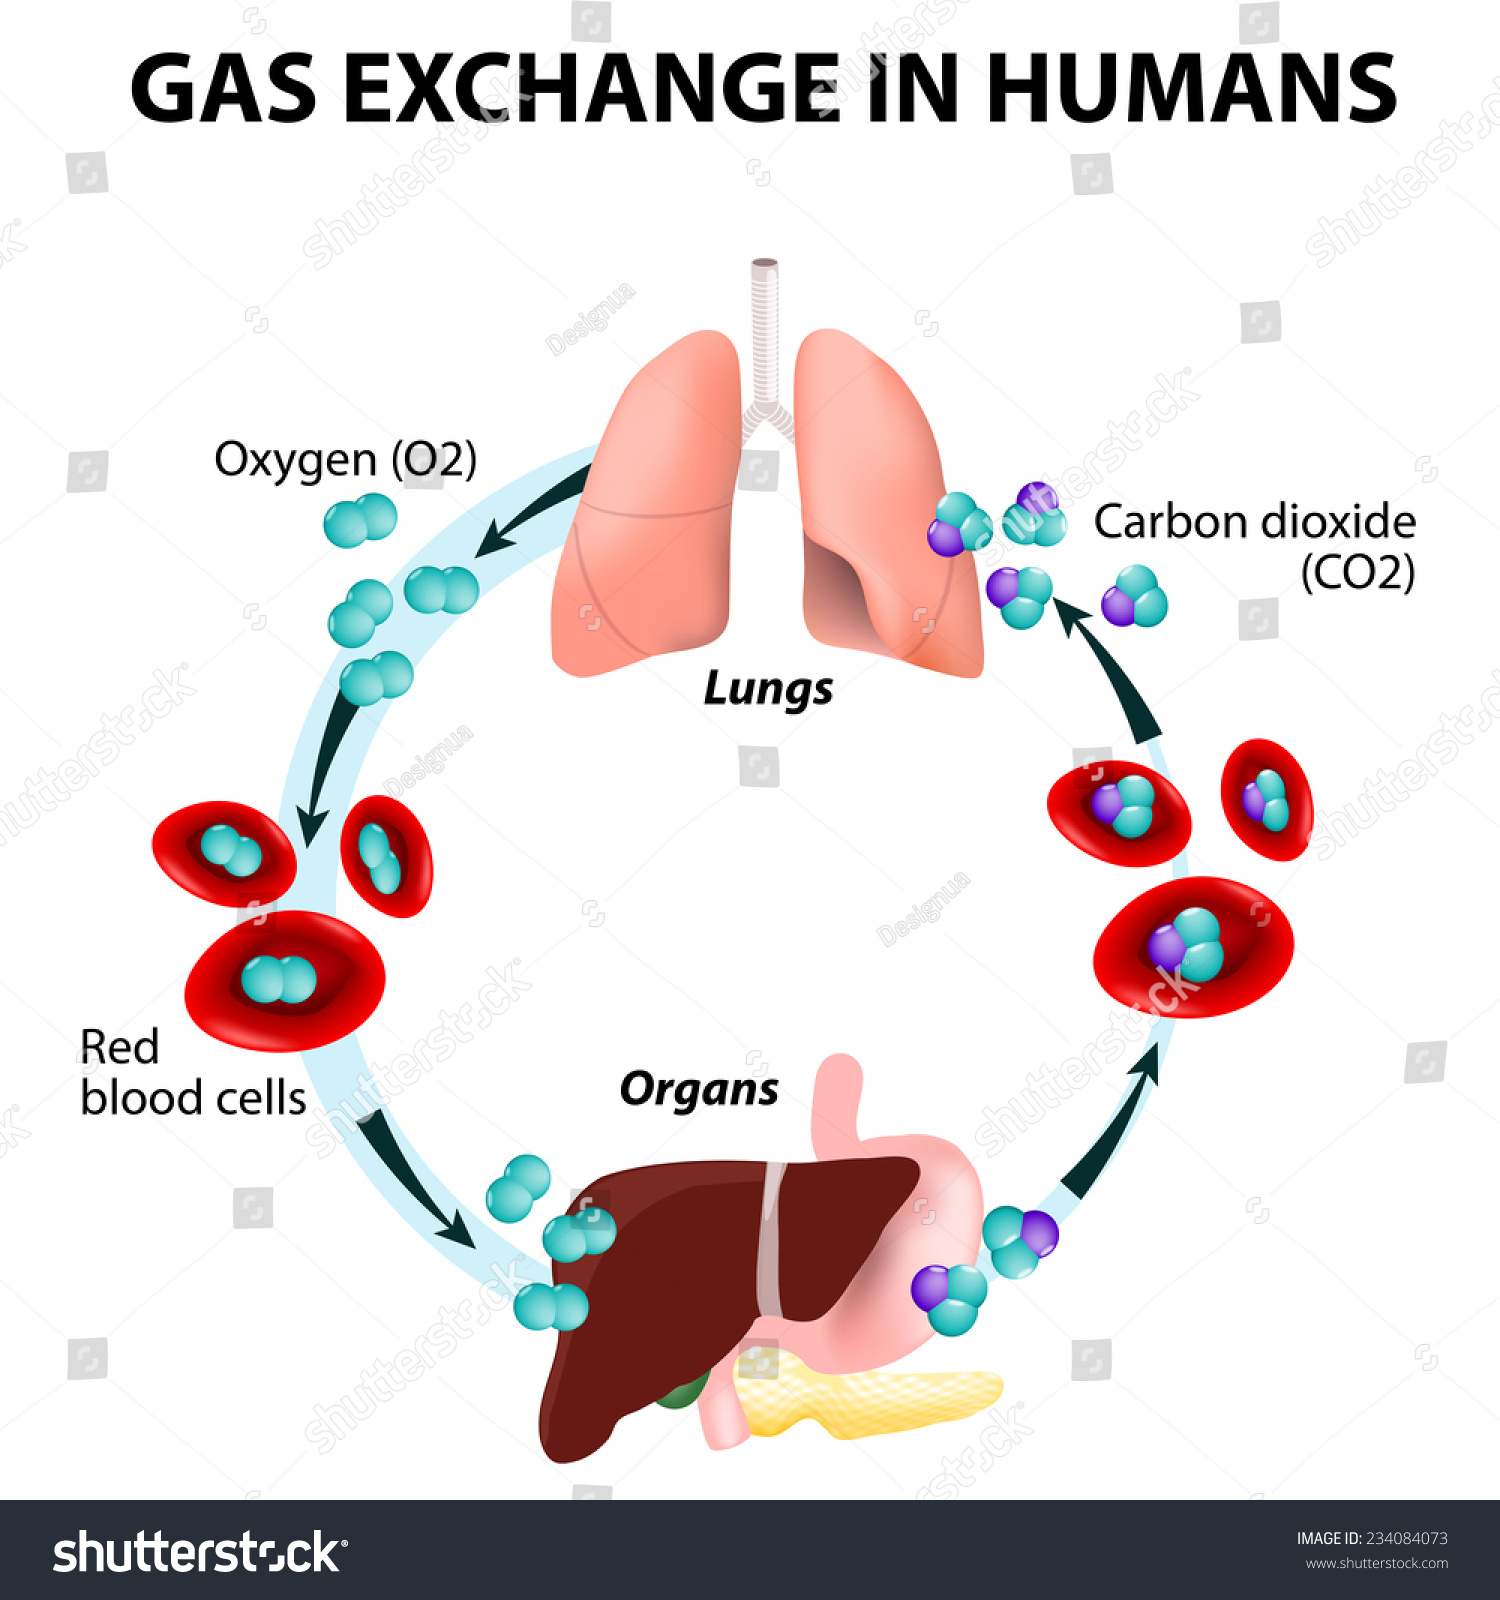 hight resolution of gas exchange in humans path of red blood cells oxygen transport cycle both oxygen and carbon dioxide are transported around the body in the blood from